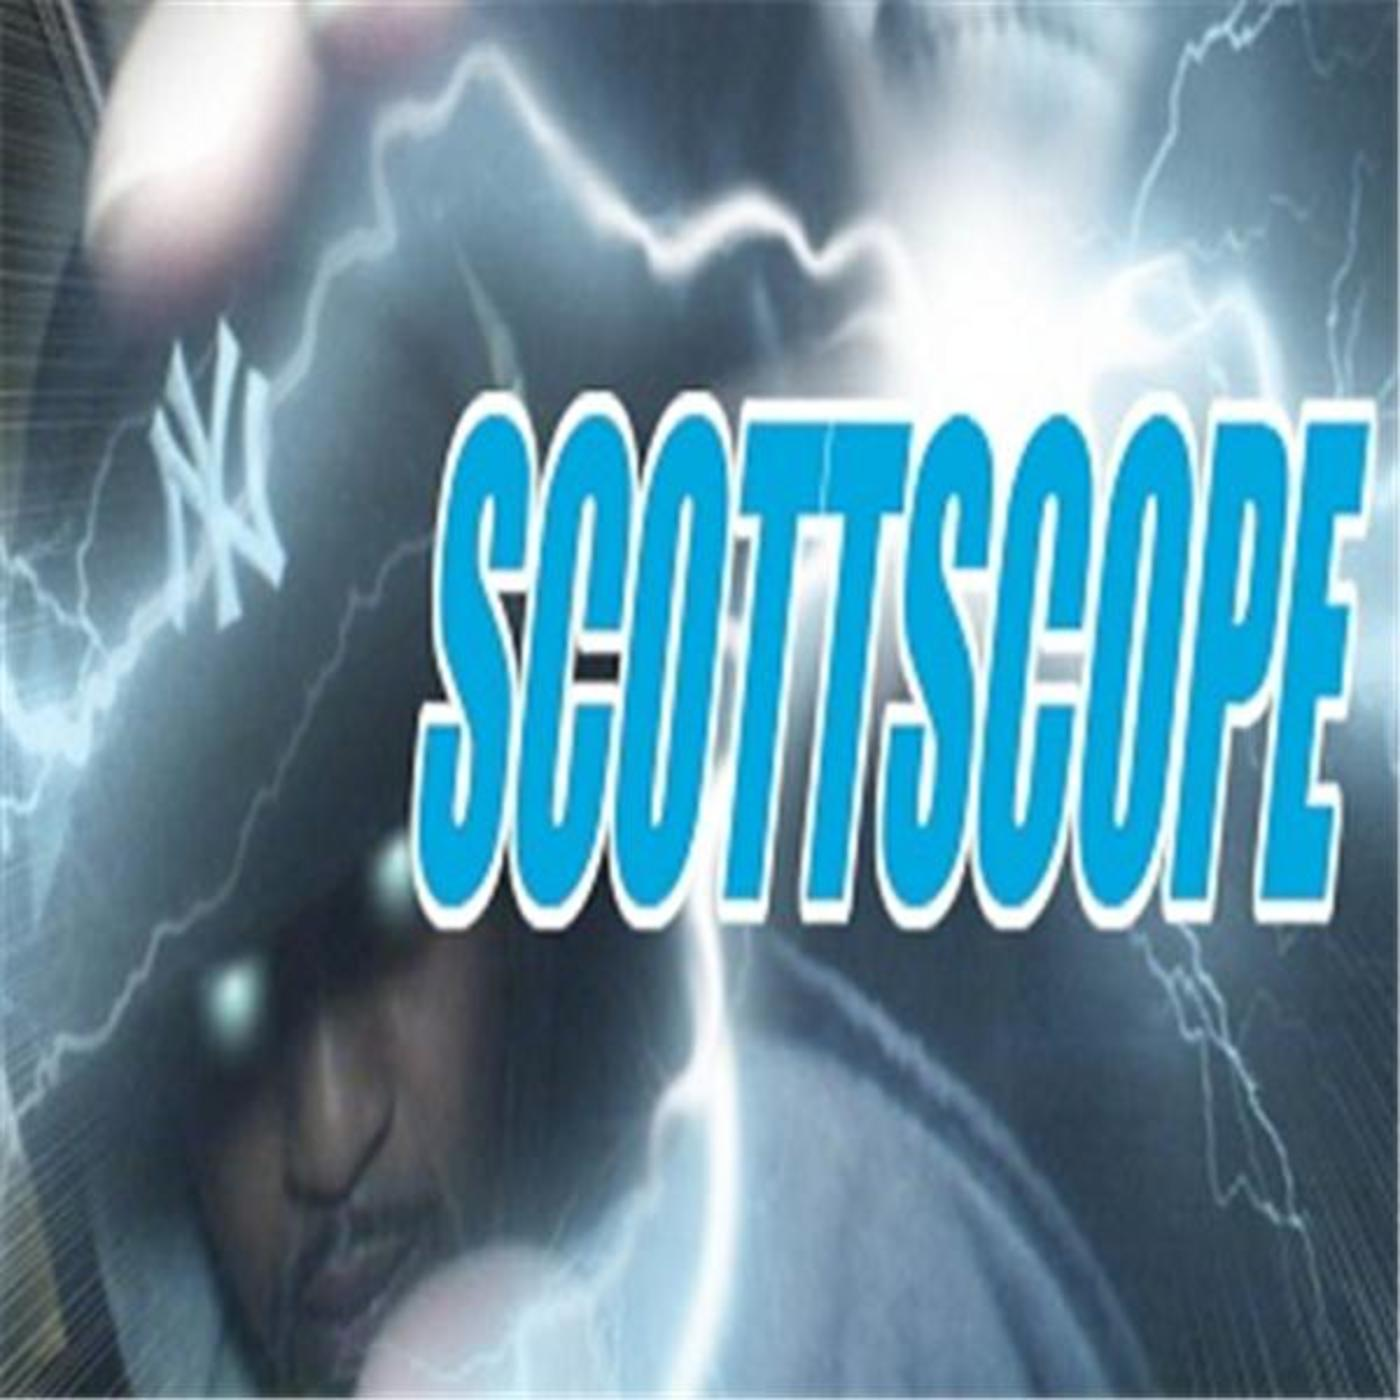 Scottscope